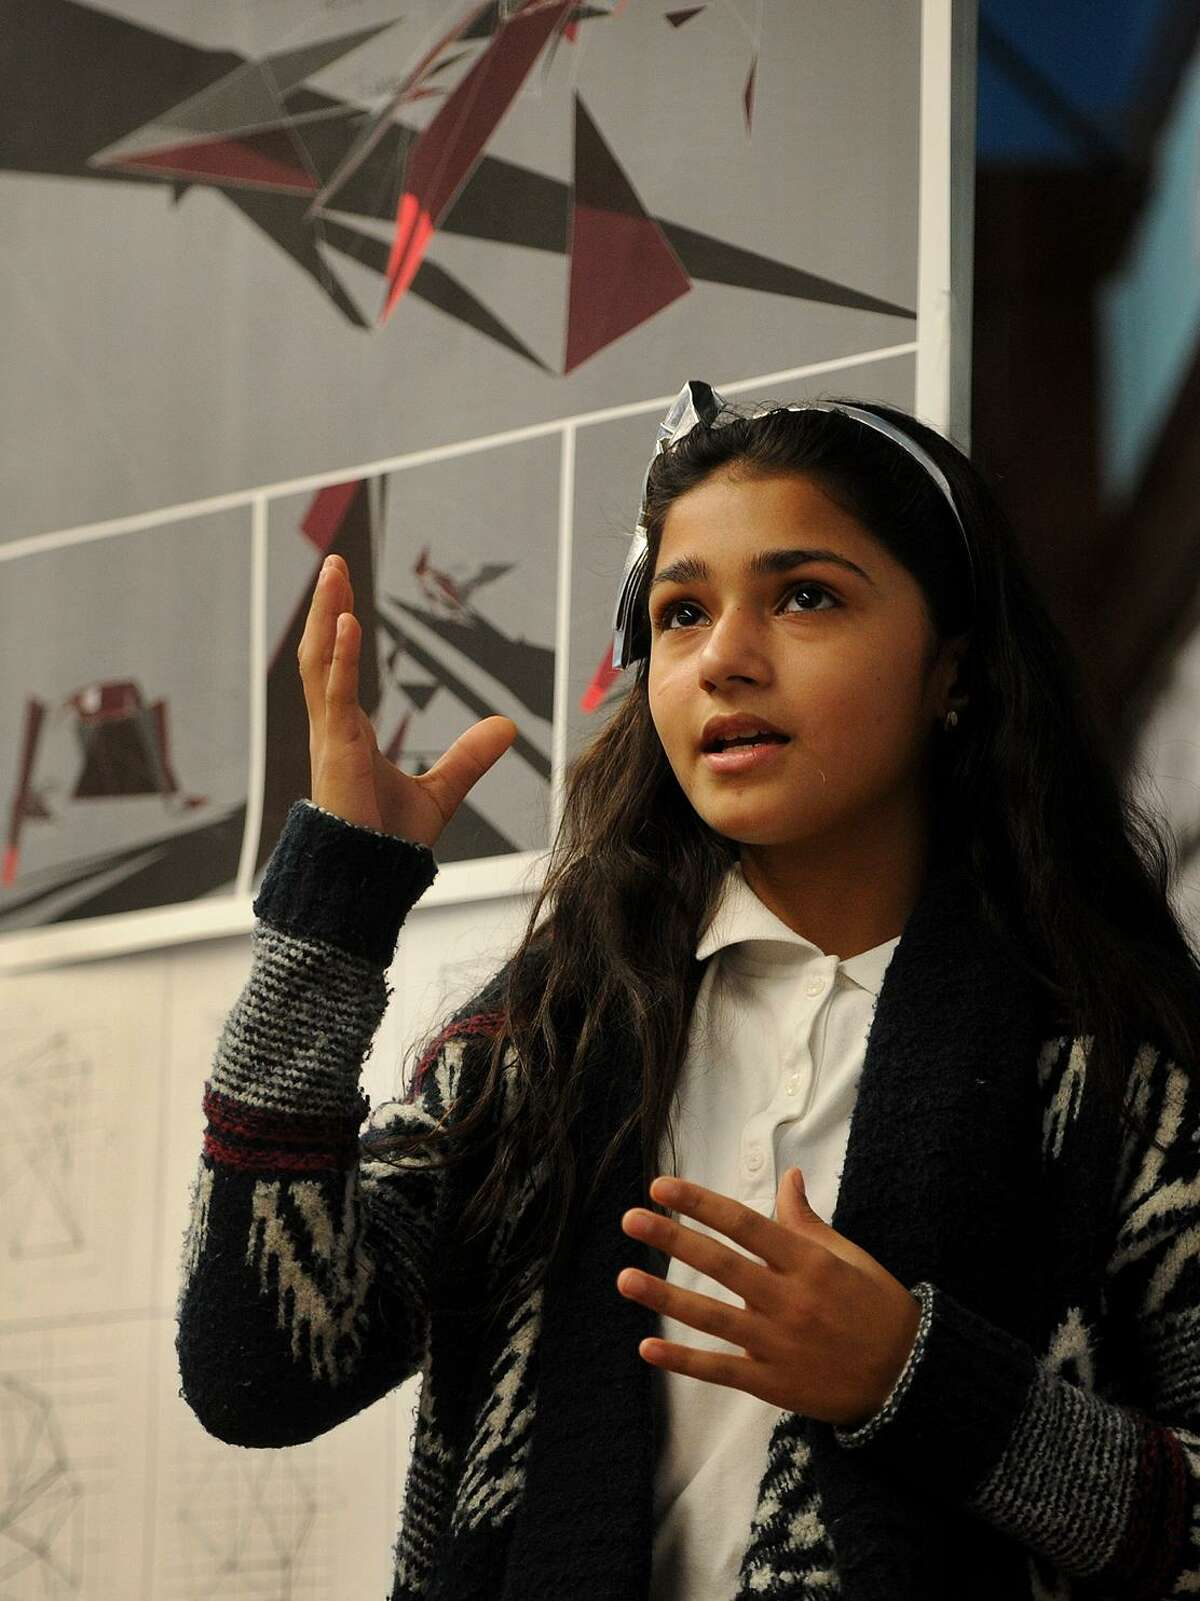 Sixth grader Milayna Roman, 11, presents her architecture project that she completed as part of the Thom Mayne Young Architects program at Hall School in Bridgeport, Conn. on Tuesday, December 5, 2017. Students learned to use a computer design program to artistically reimagine their classroom space.